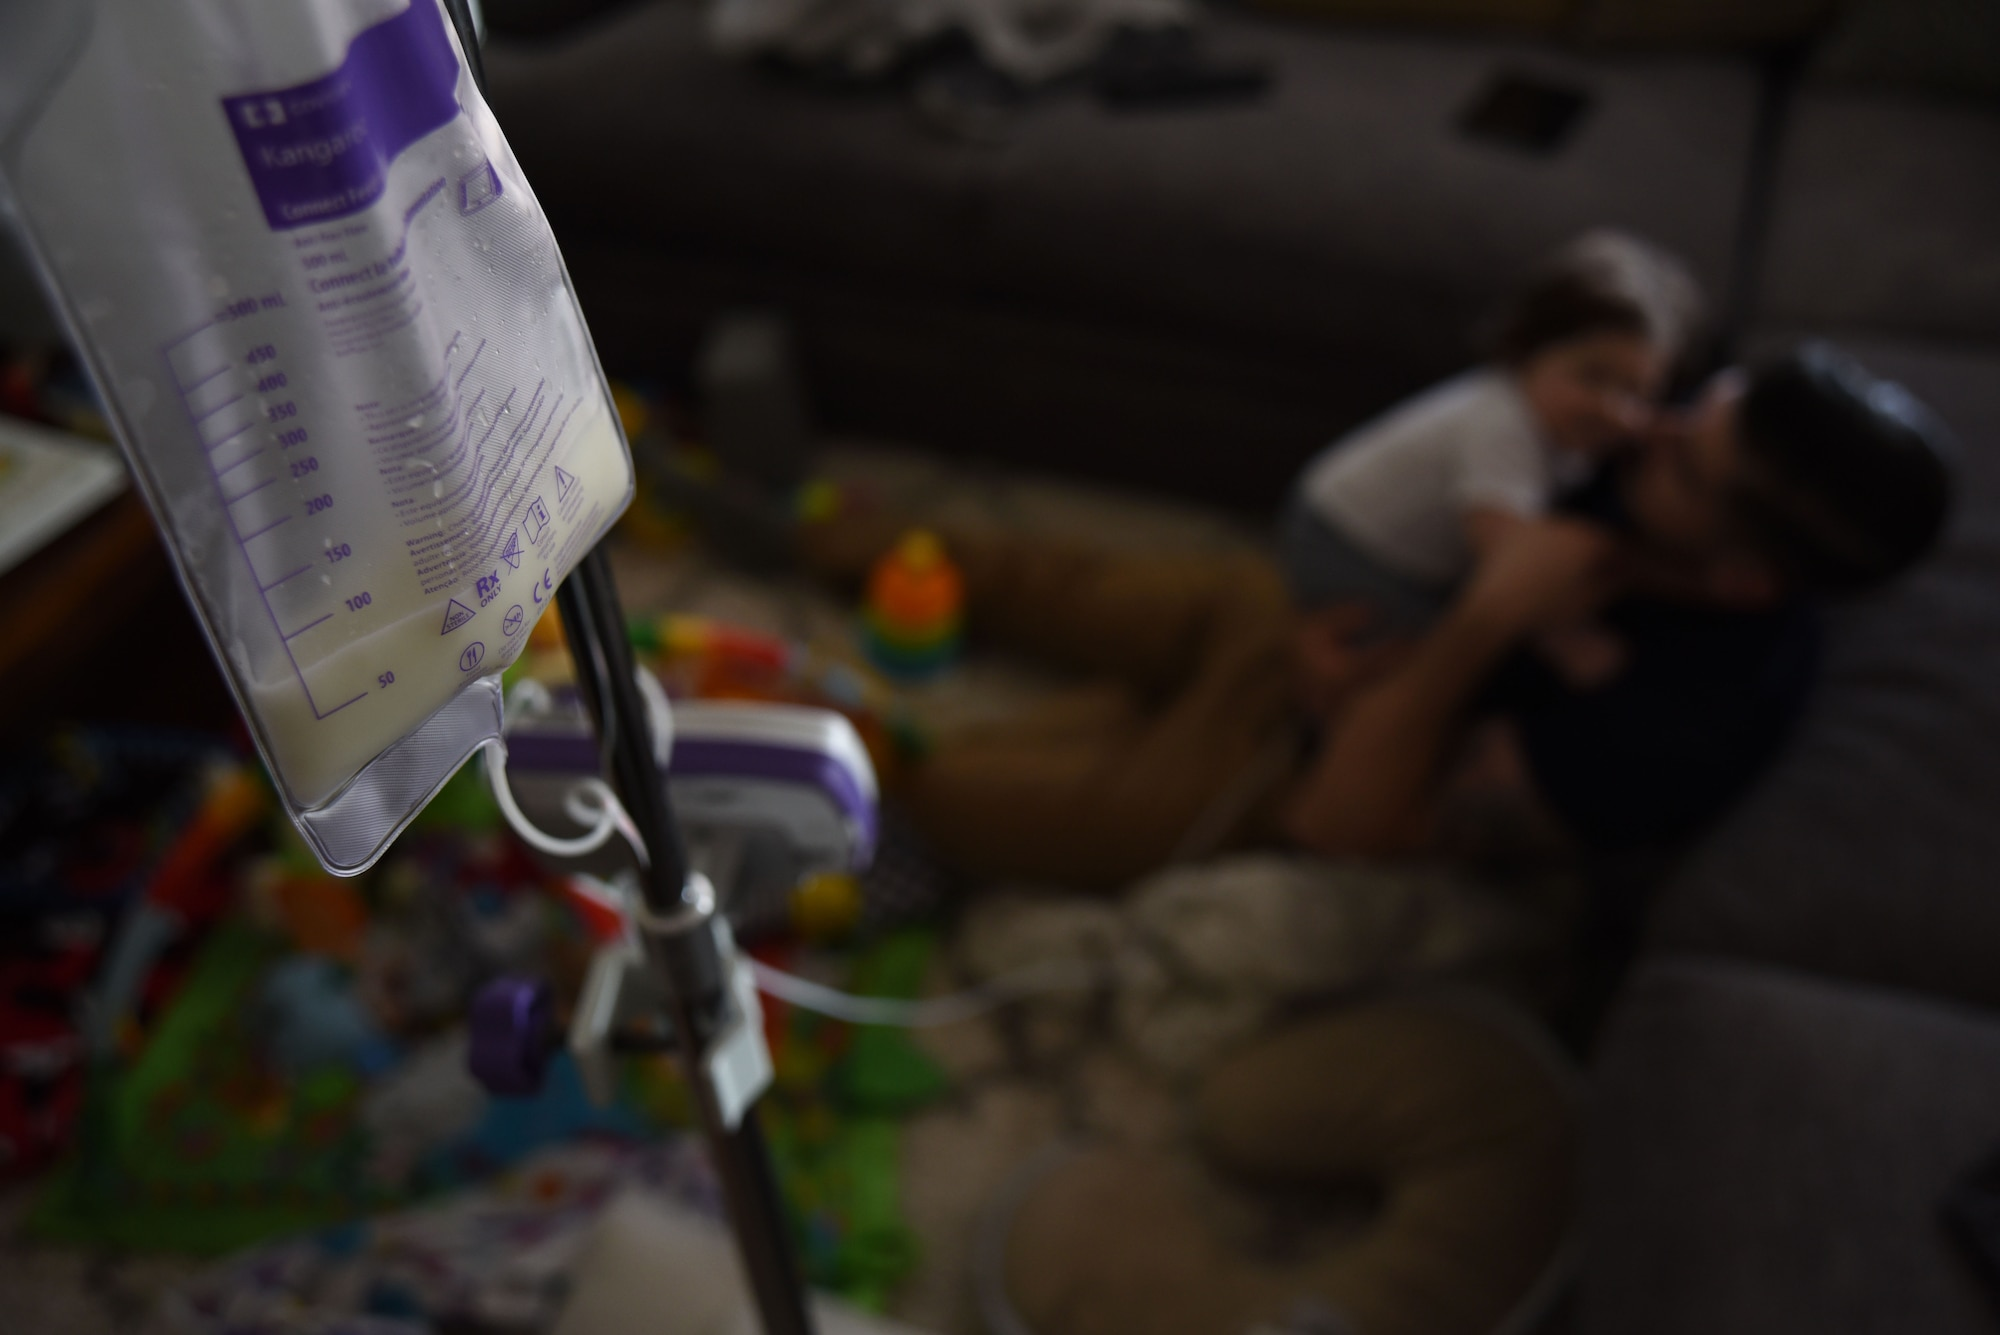 U.S. Air Force Tech. Sgt. Ben Mockovciak, 372nd Training Squadron Detachment 202 F-16 tactical aircraft maintenance instructor, plays with his son, Noah Mockovciak, as Noah is fed through a gastrostomy tube in their home at Columbia, S.C., March 15, 2018.